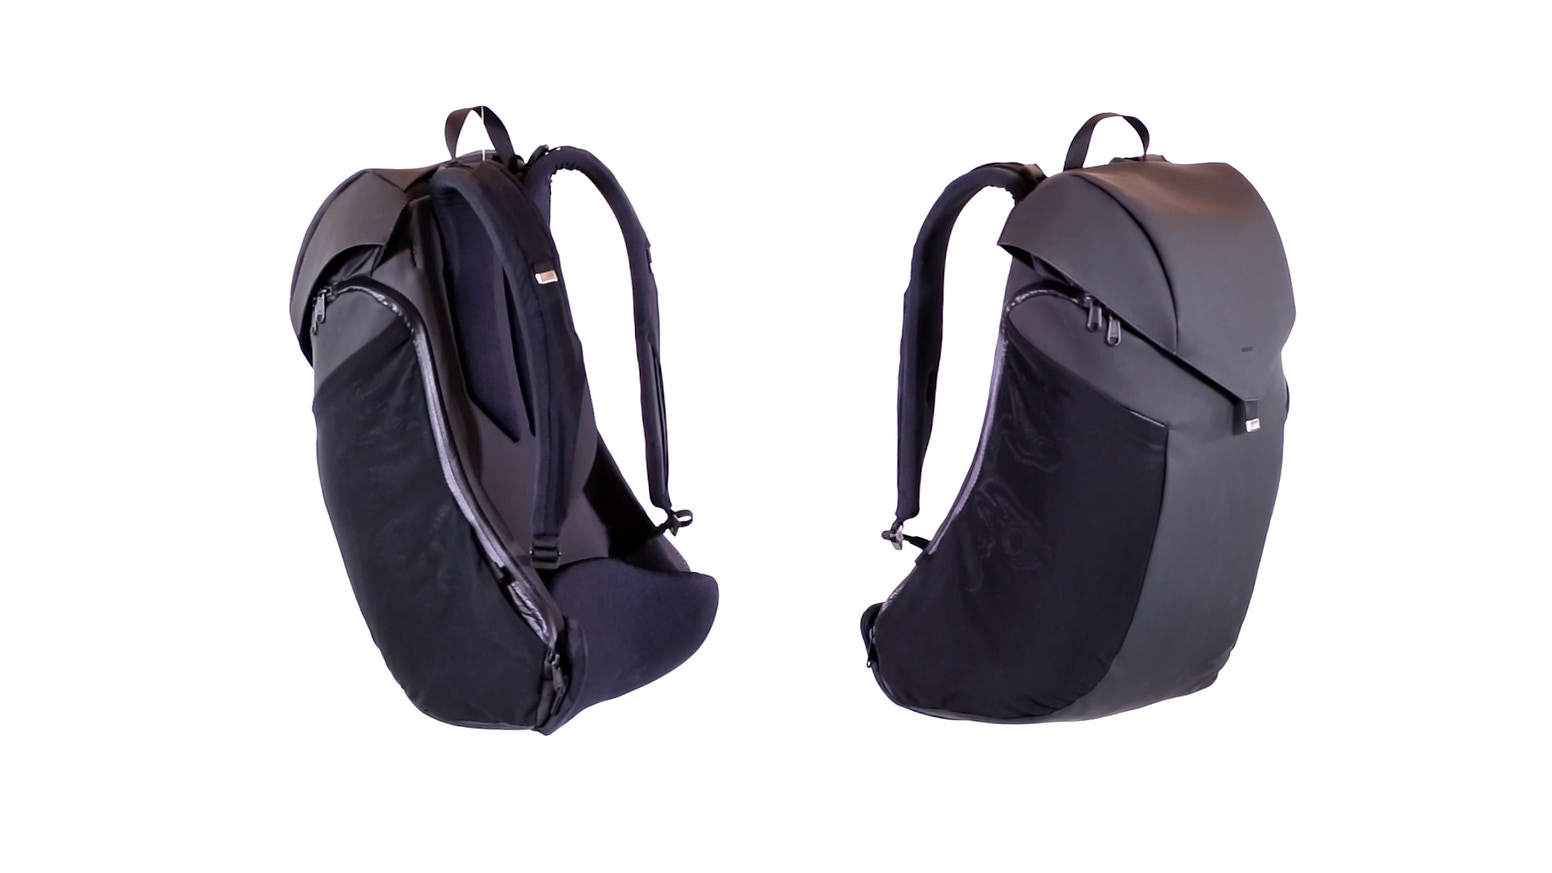 80d2418c31 JOEY – The backpack that gives your body a break. by Koala-Gear ...